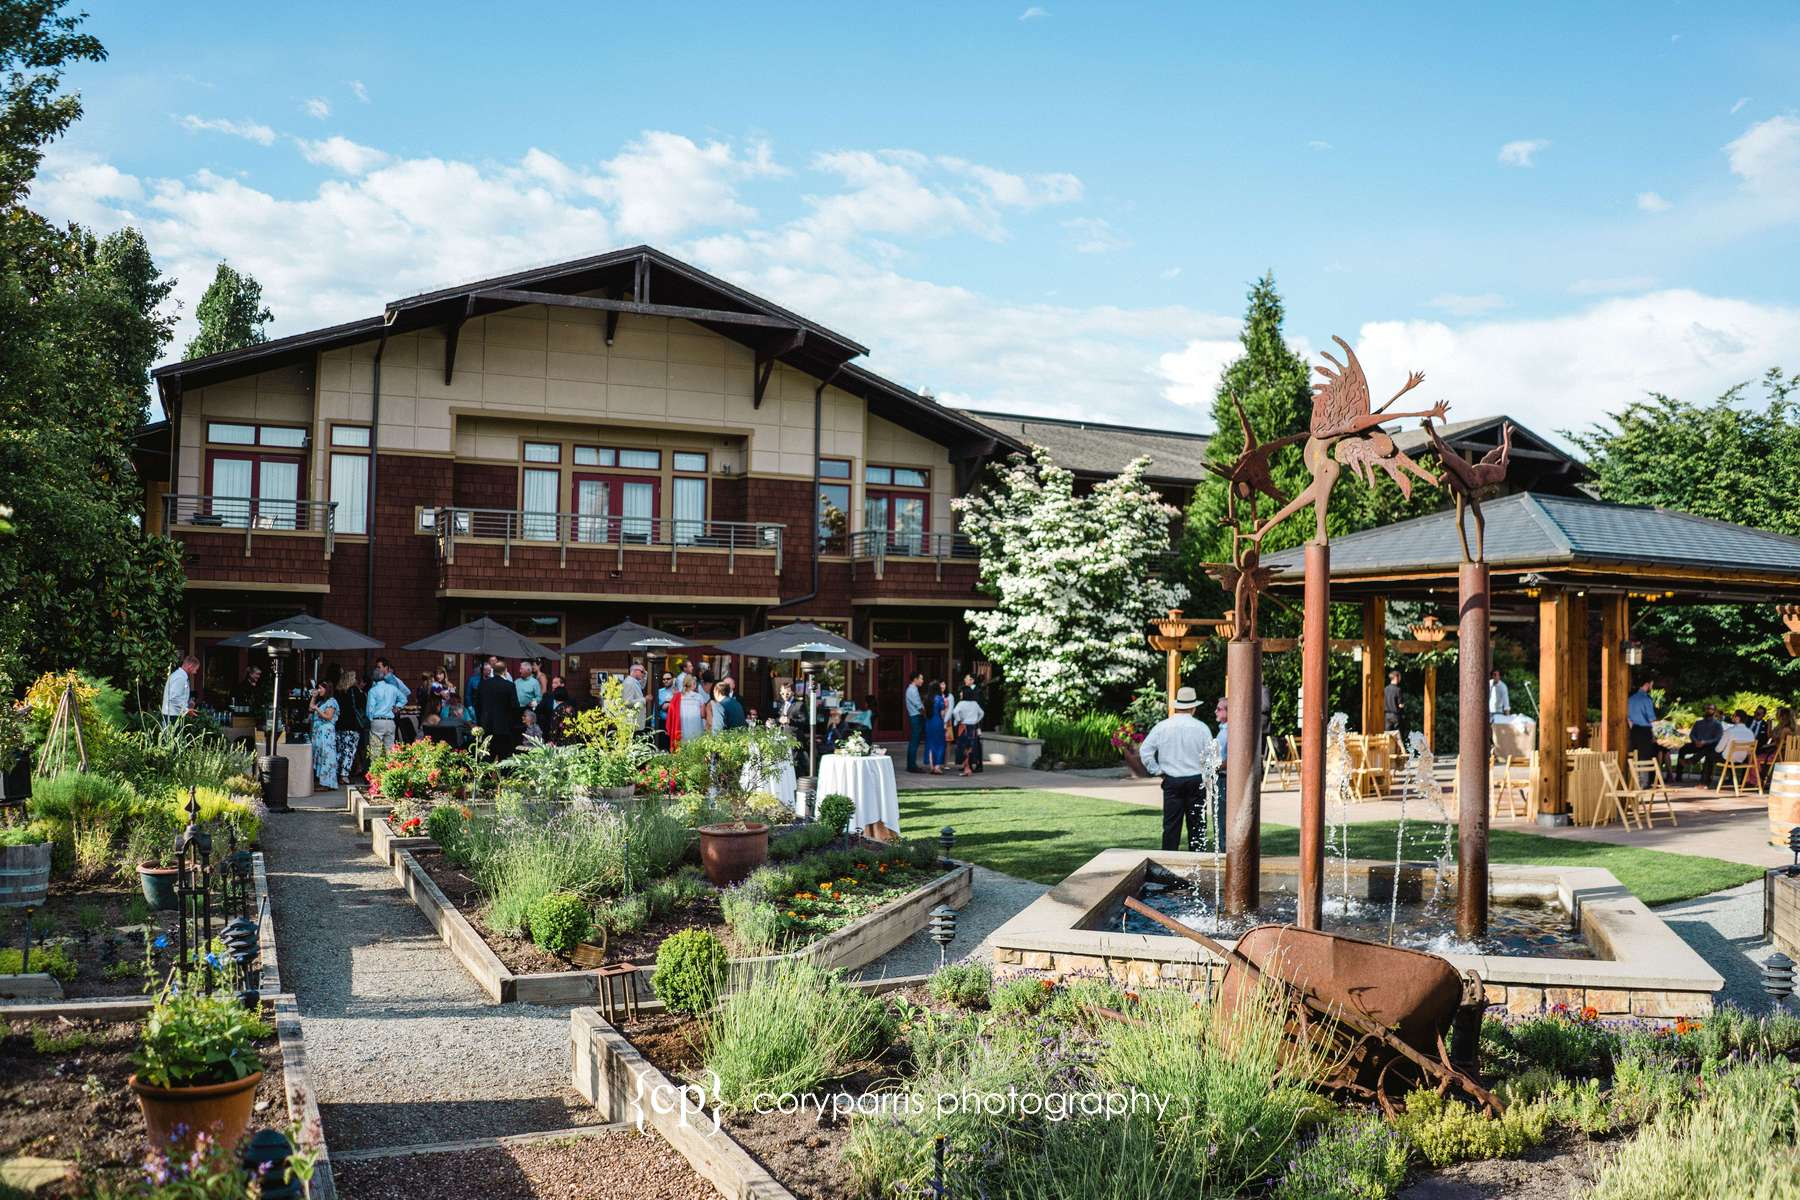 448-Willows-Lodge-Wedding-Photography-Woodinville.jpg